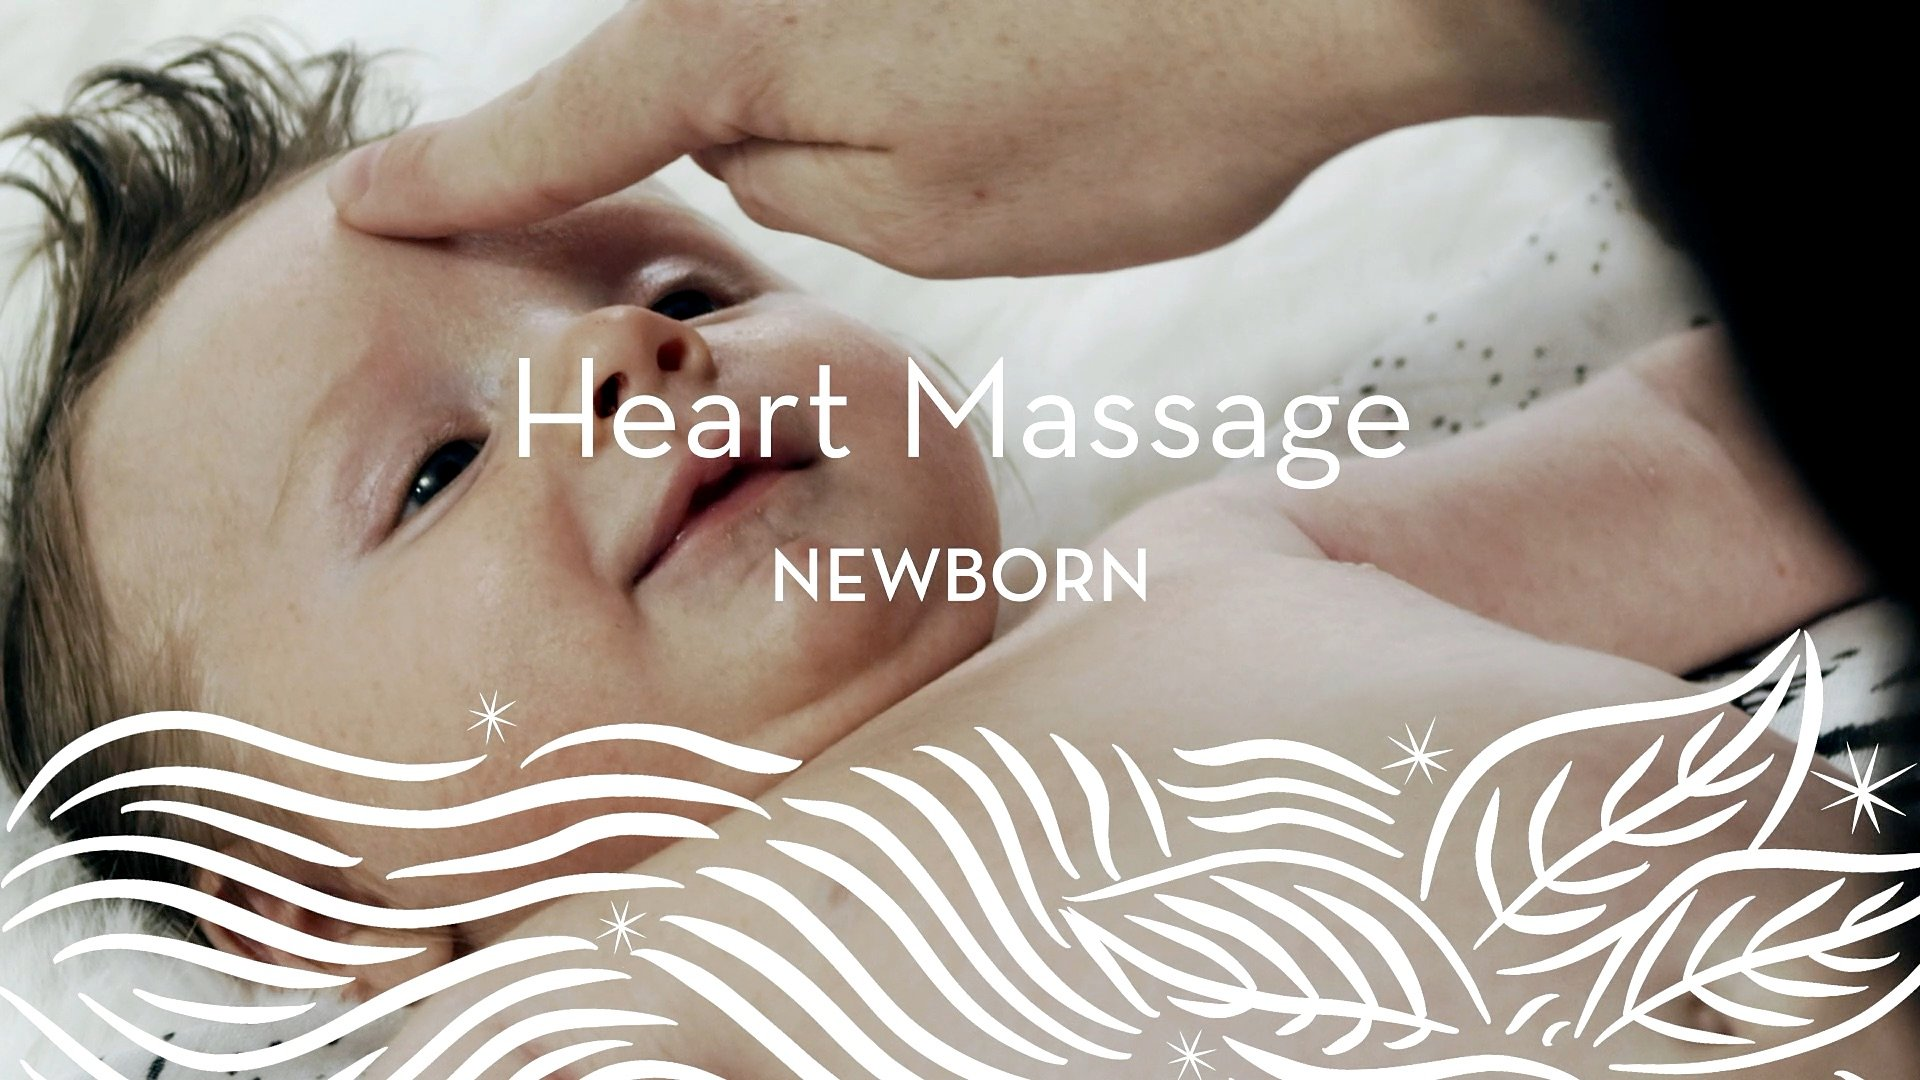 Newborn | Heart Massage